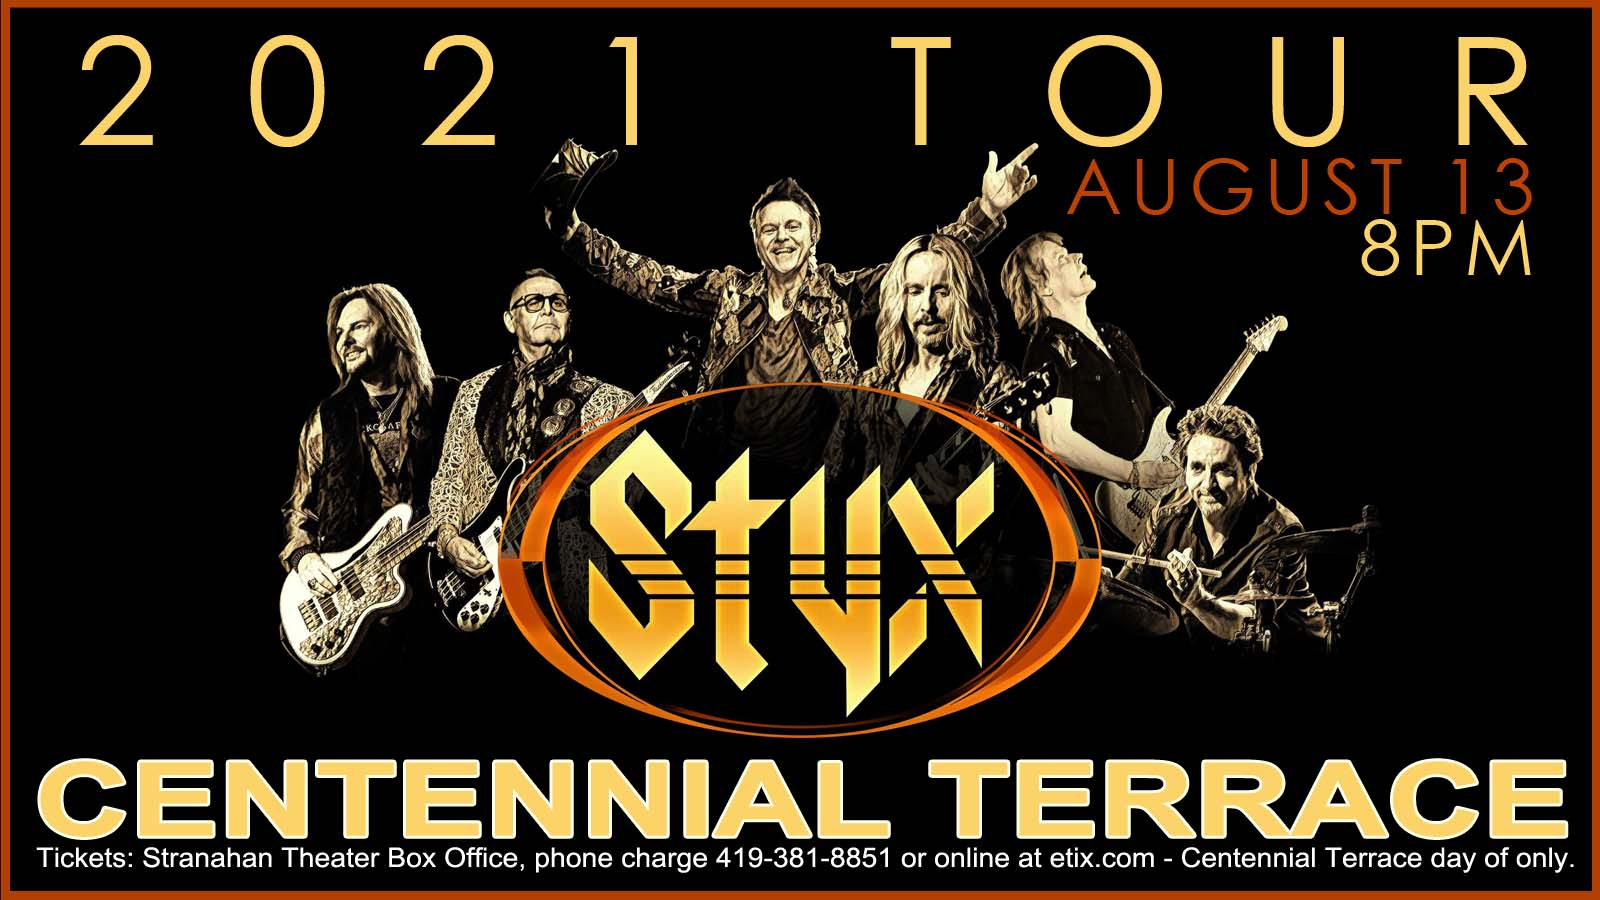 Styx – Centennial Terrace – August 13